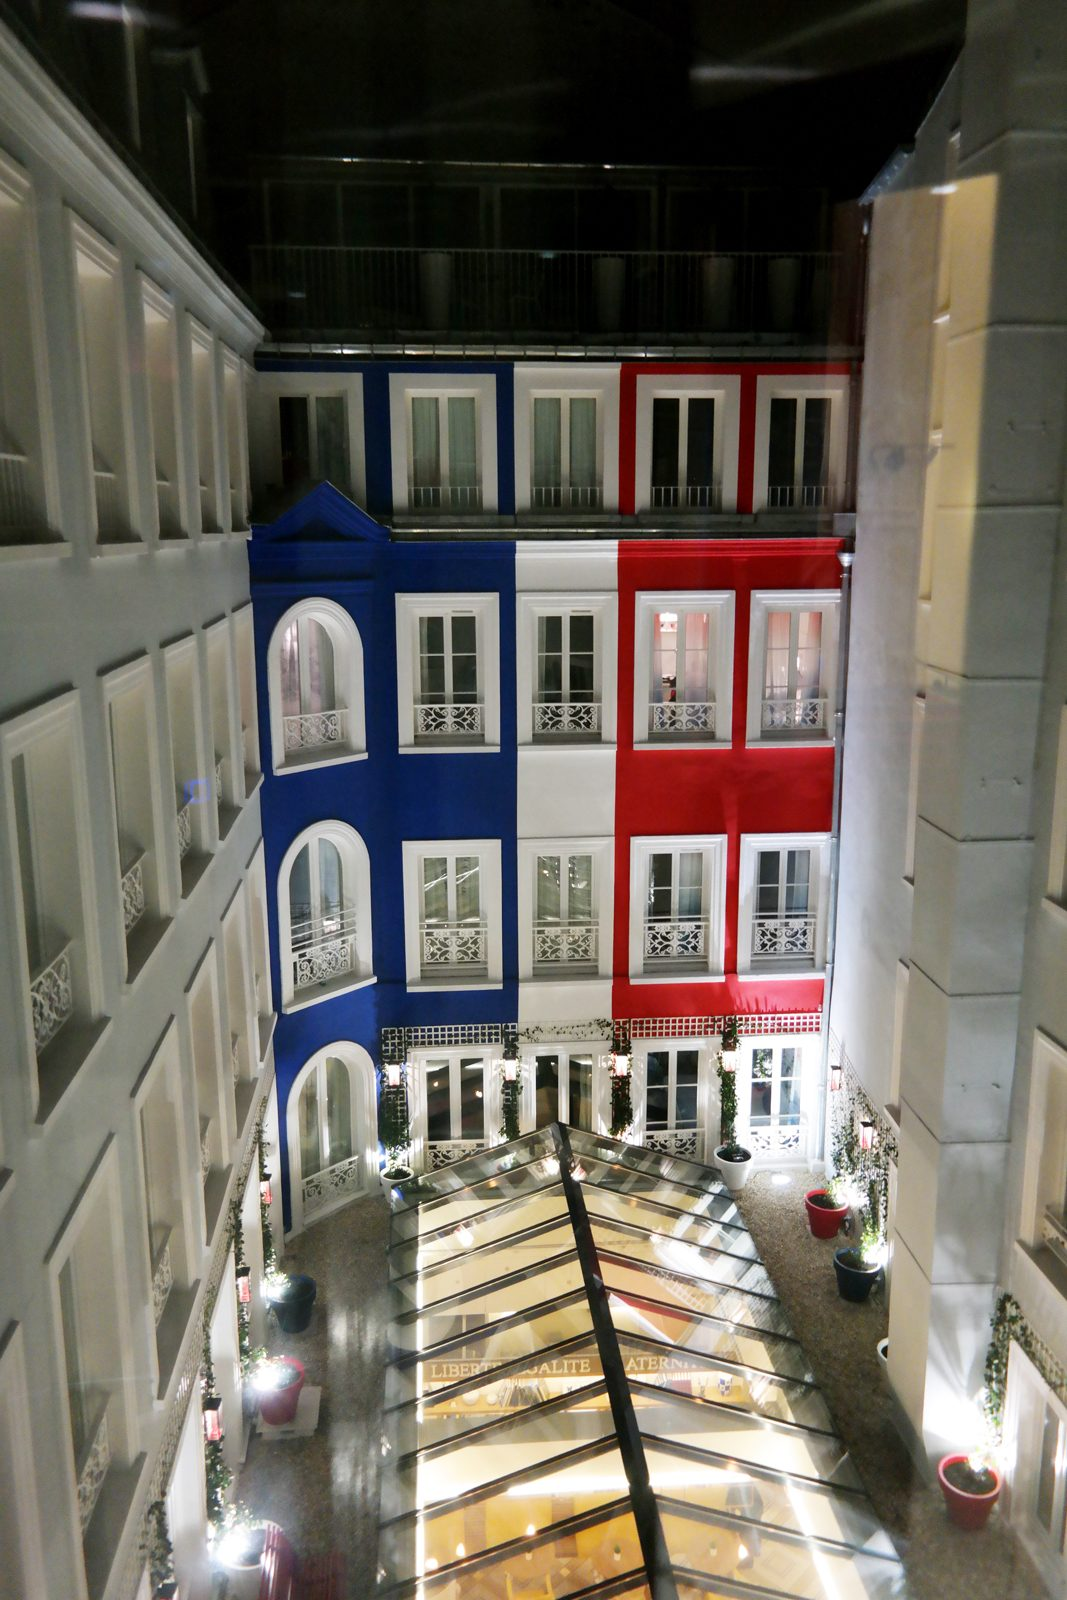 Hotel le 34B astotel paris 34 rue Bergere 75009 blue white red facade french design booking photo usofparis blog